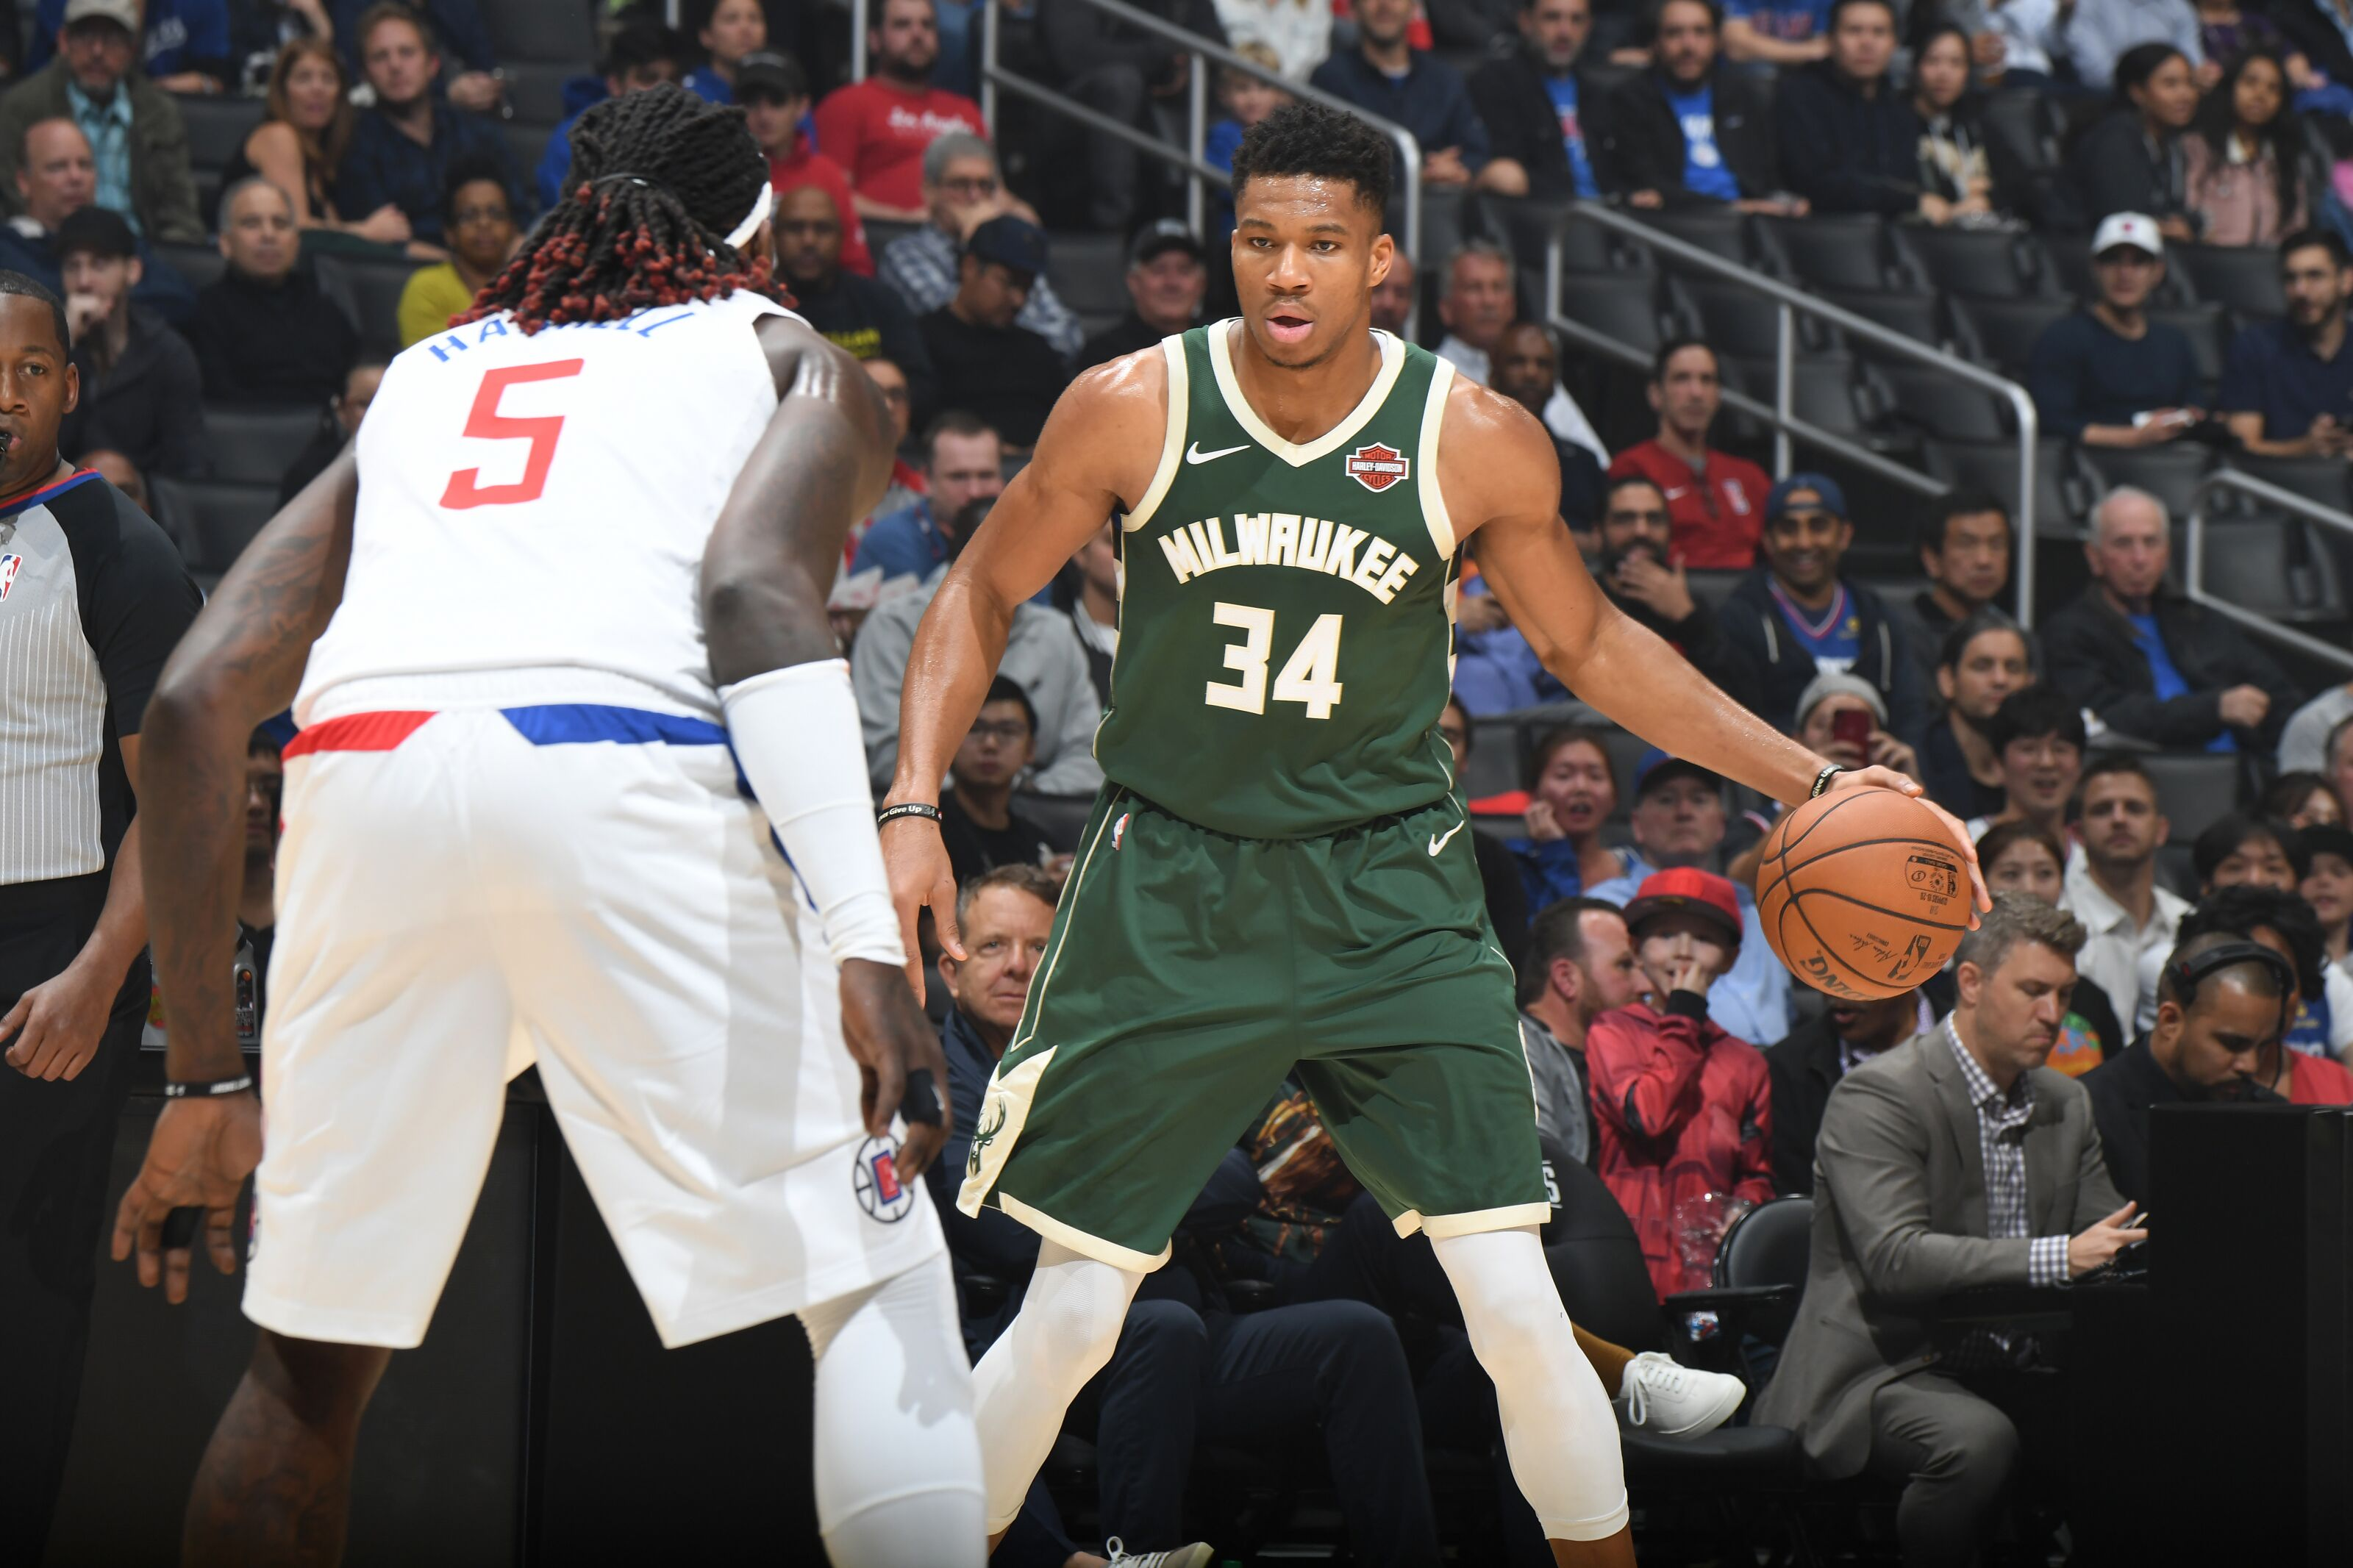 LA Clippers and Bucks face off in battle of NBA's best